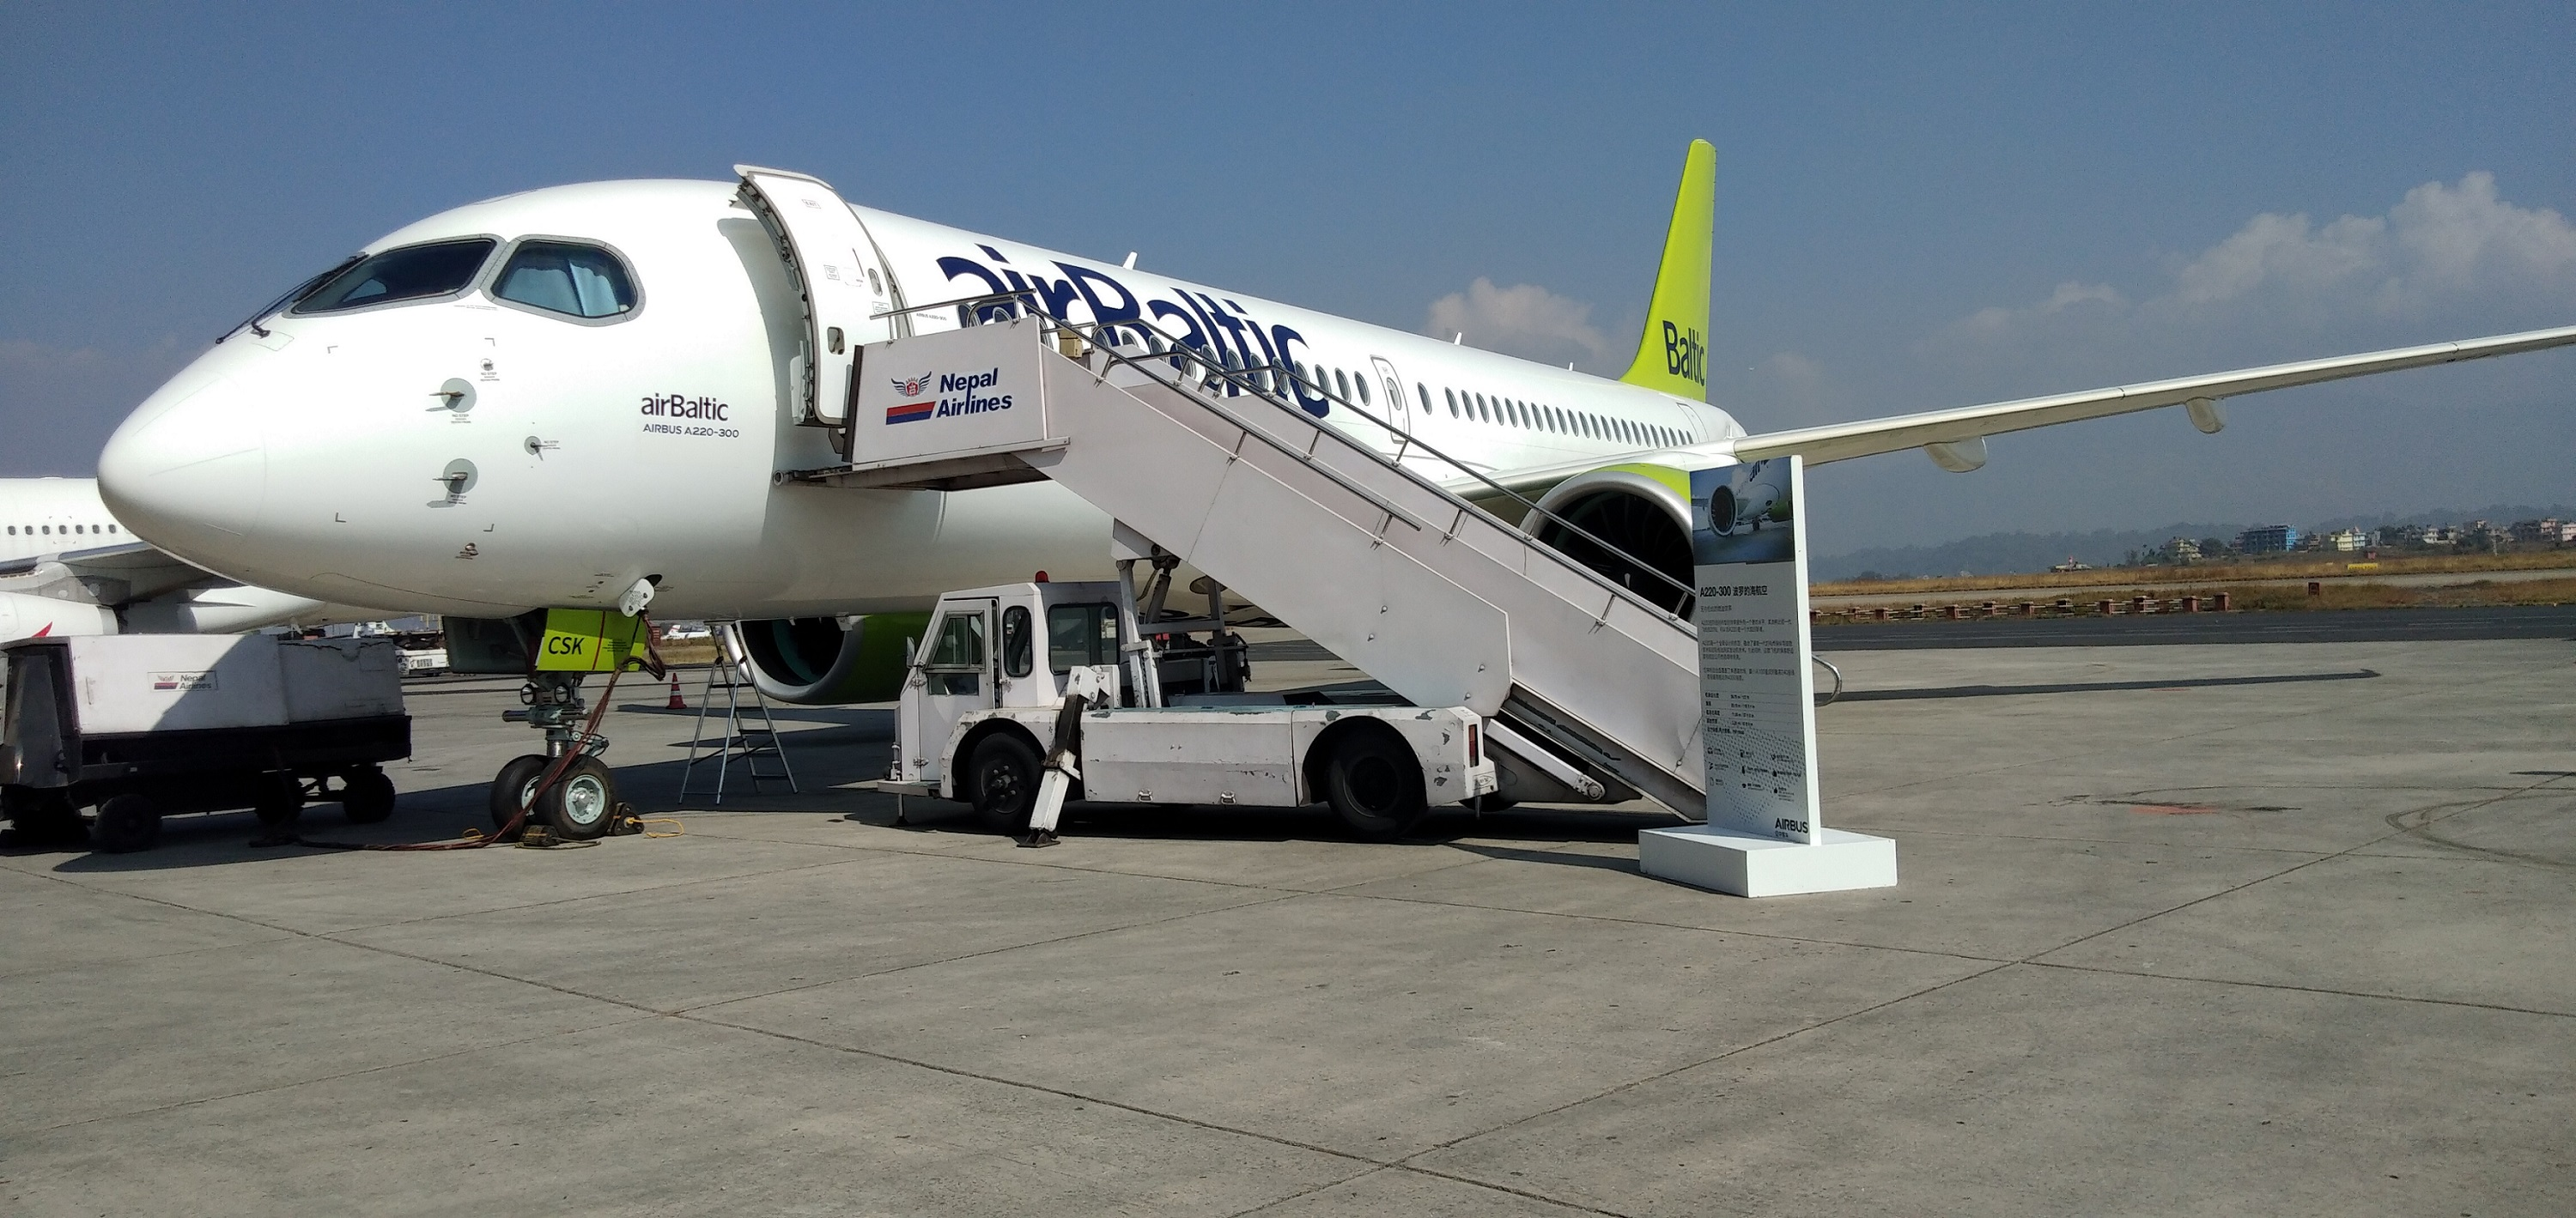 Airbus showcases the latest member of its commercial aircraft family at the Tribhuvan International Airport, Kathmandu on Monday, November 12, 2018. Photo: Avian WE